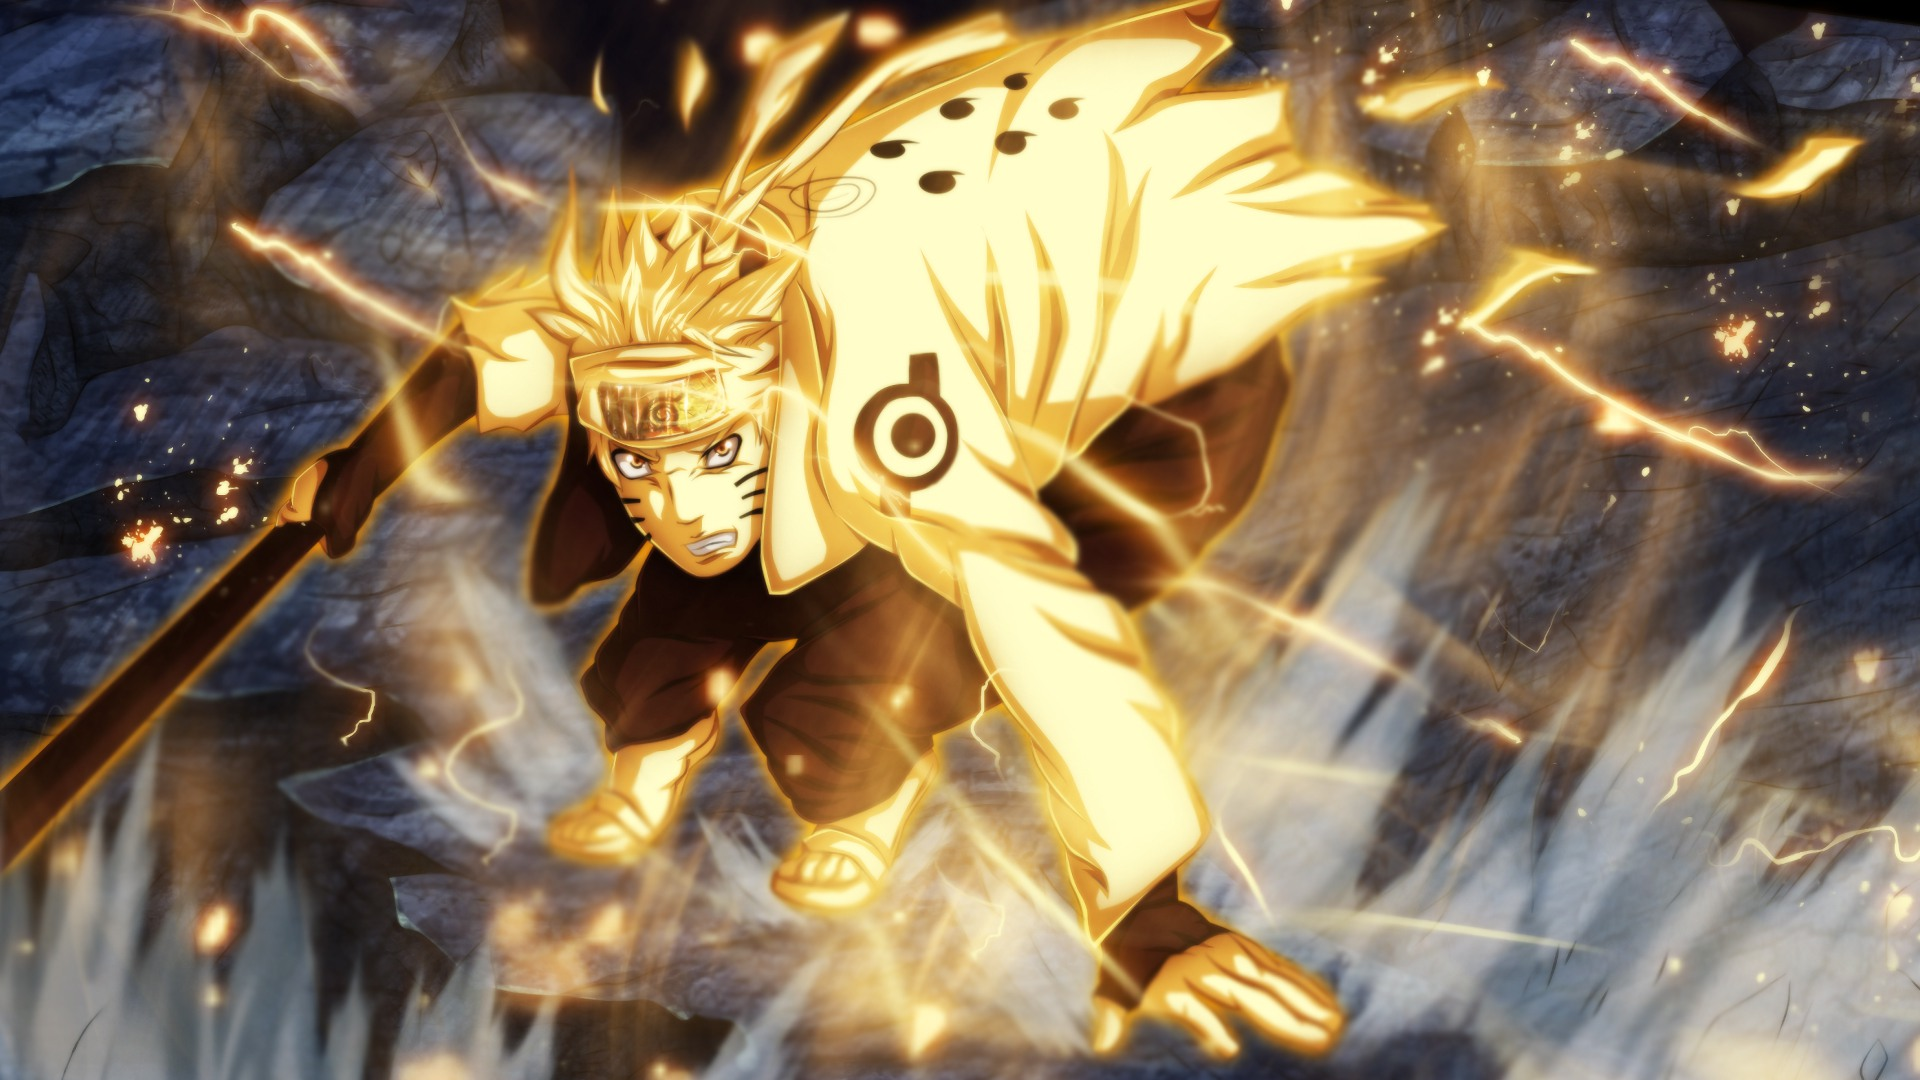 Naruto Six Paths Sage Mode Wallpaper Posted By Samantha Tremblay